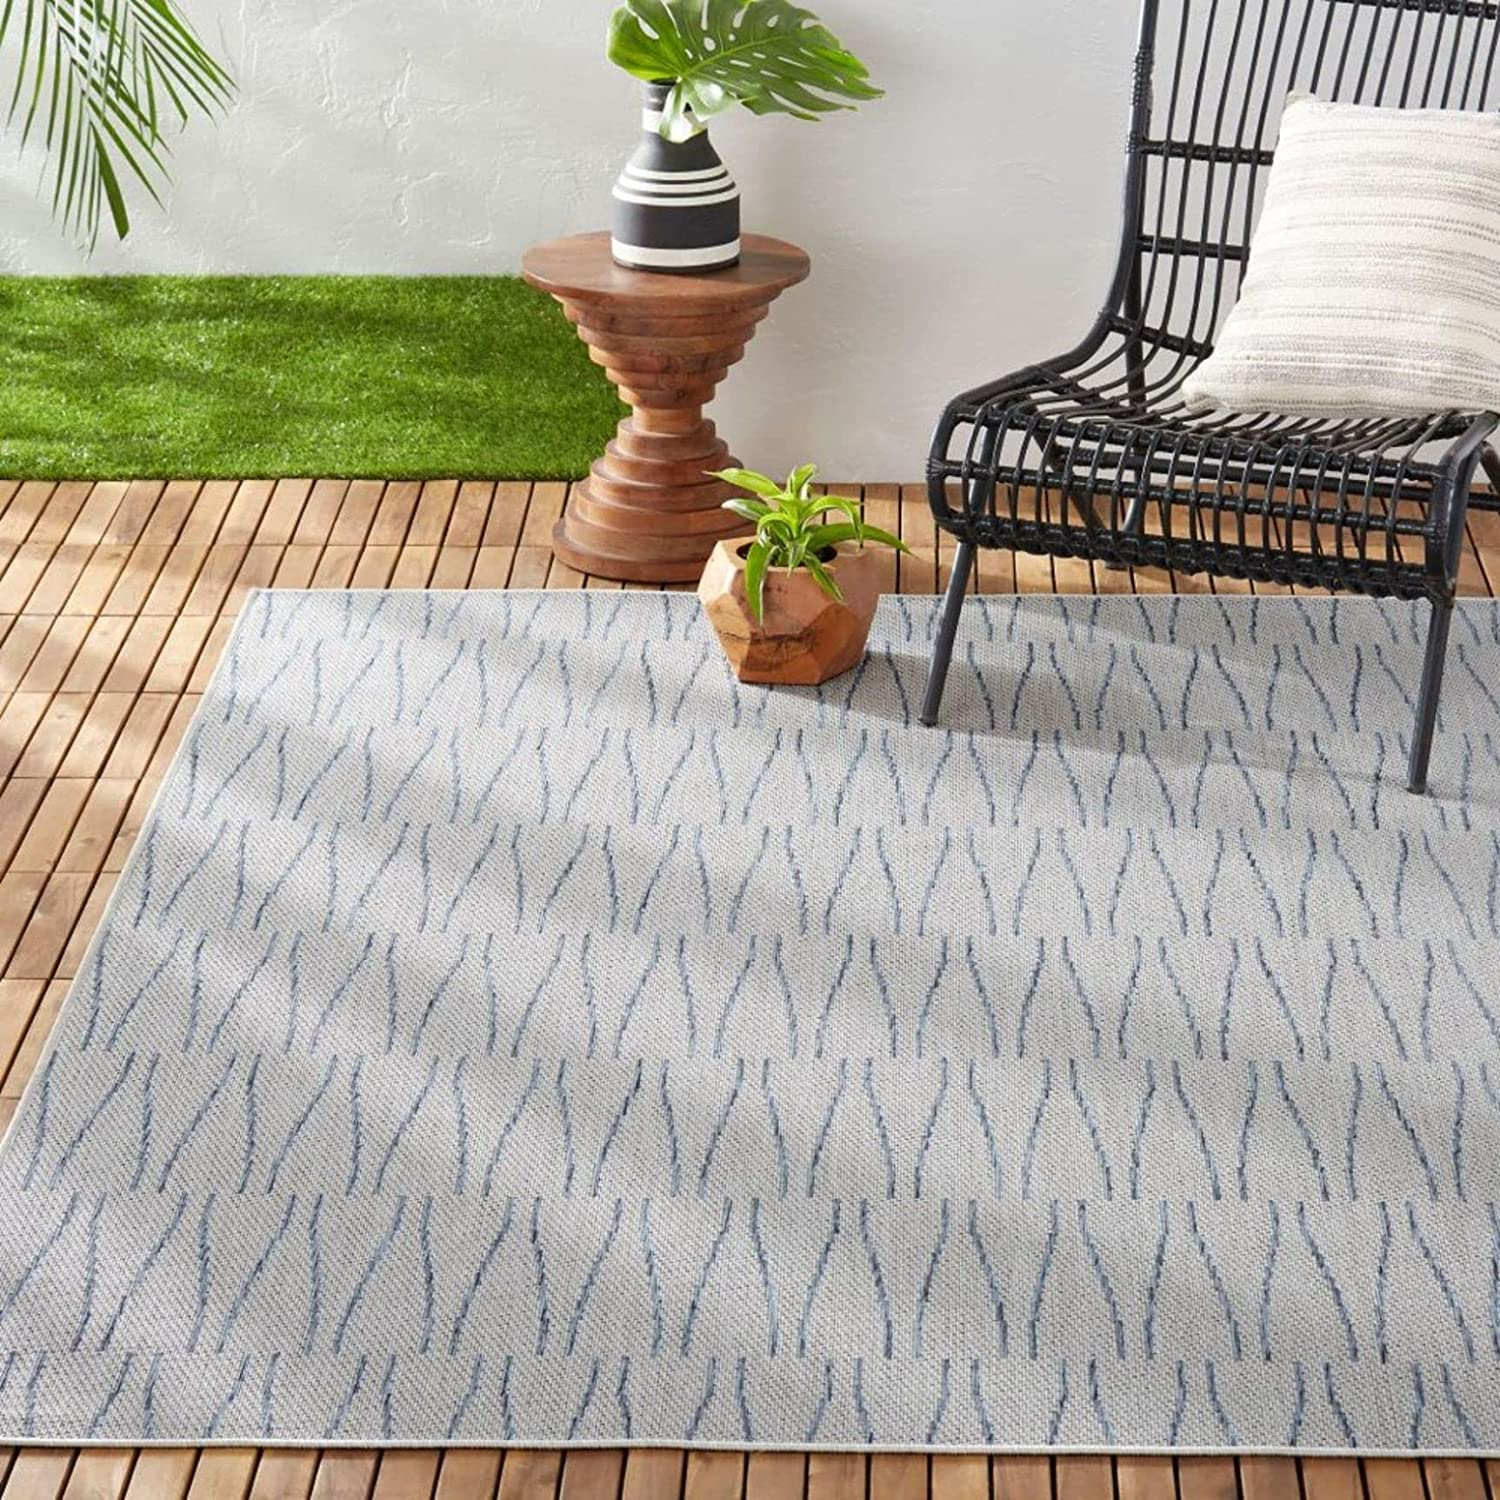 Inexpensive Nicole Miller New York Patio Indoor Outdoor Country Area Willow Cheap super special price